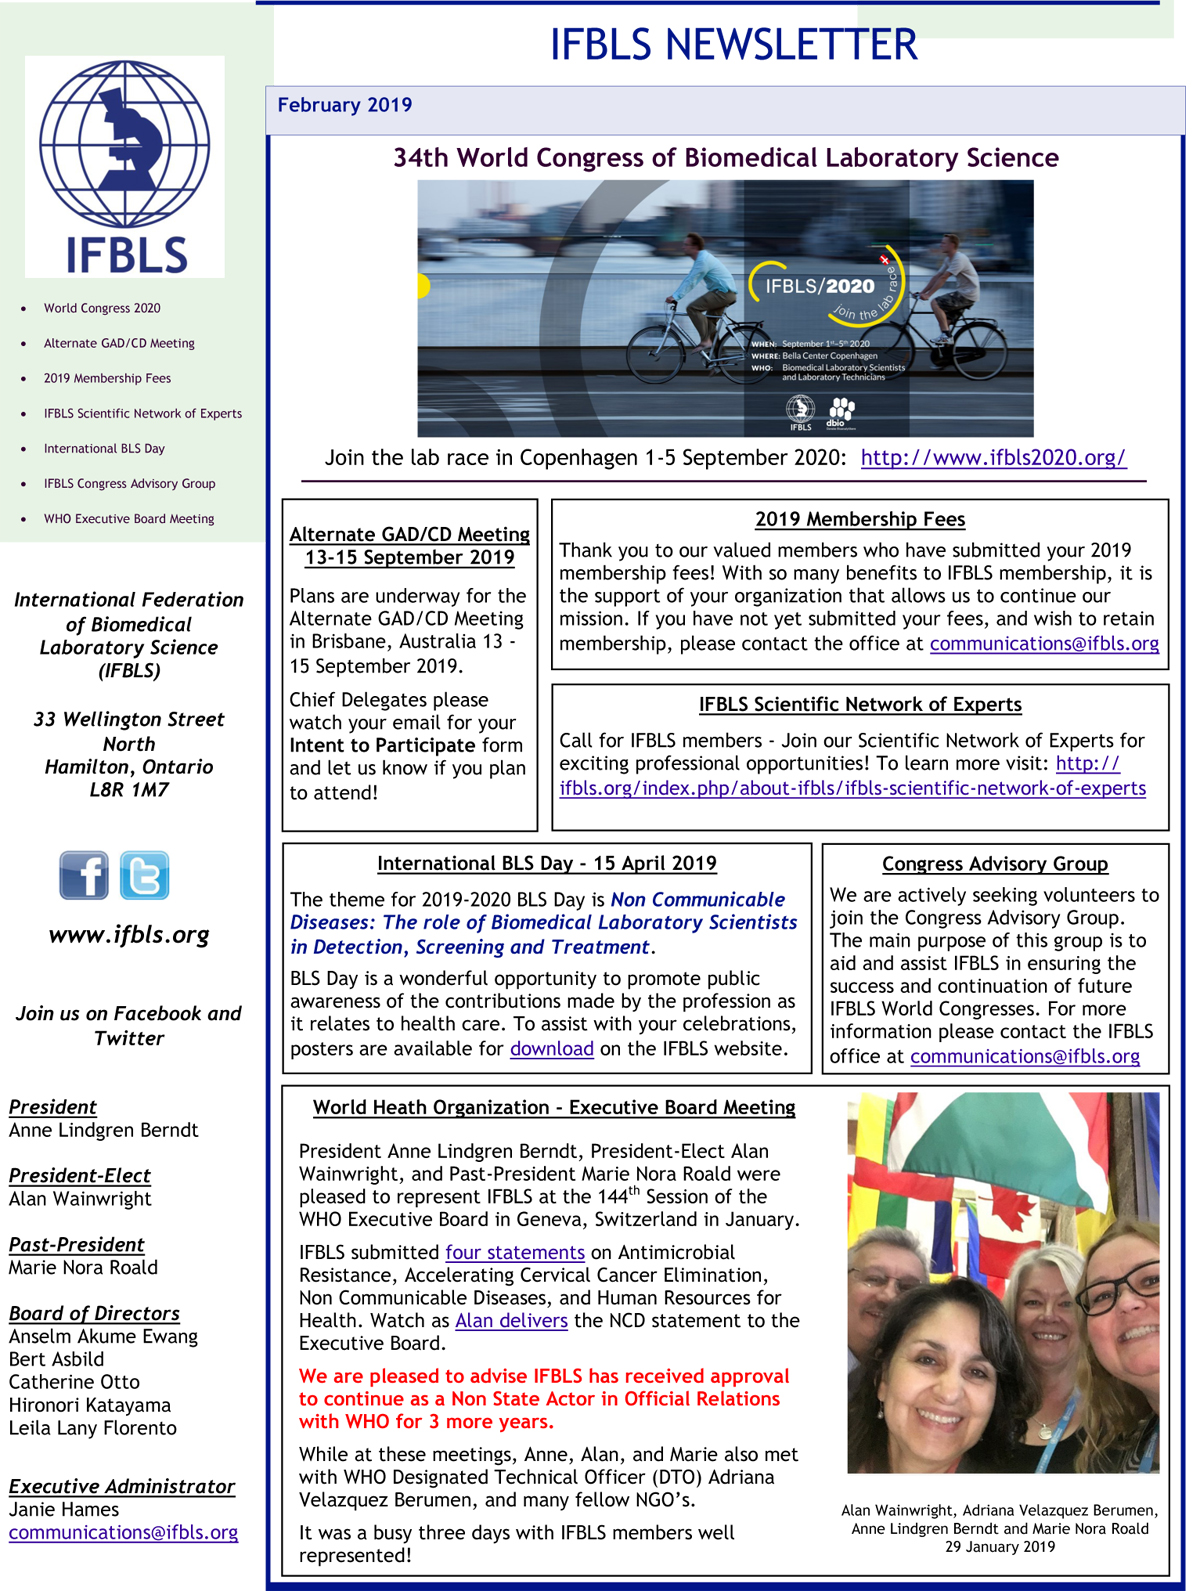 IFBLS Newsletter February 2019